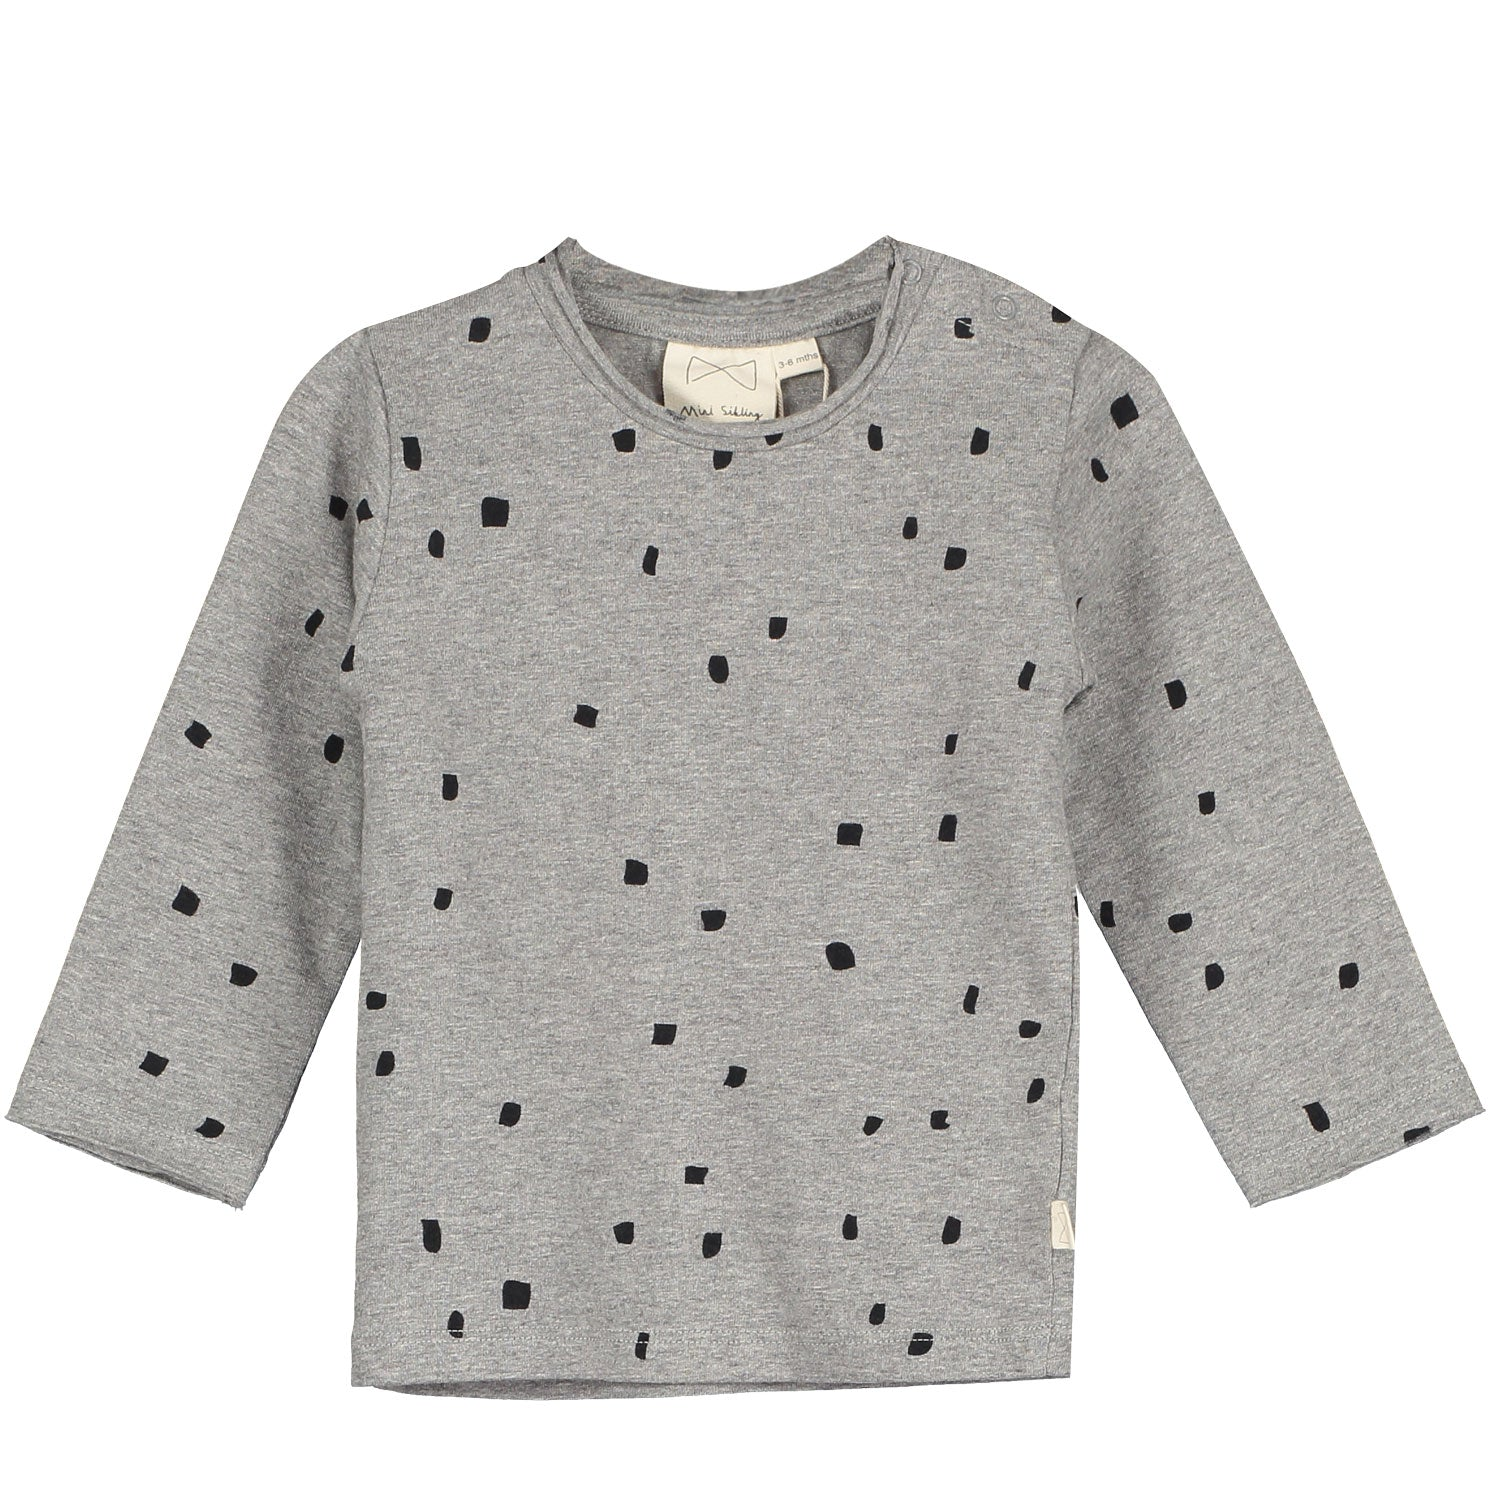 Mini Sibling Grey Confetti Long Sleeved Top